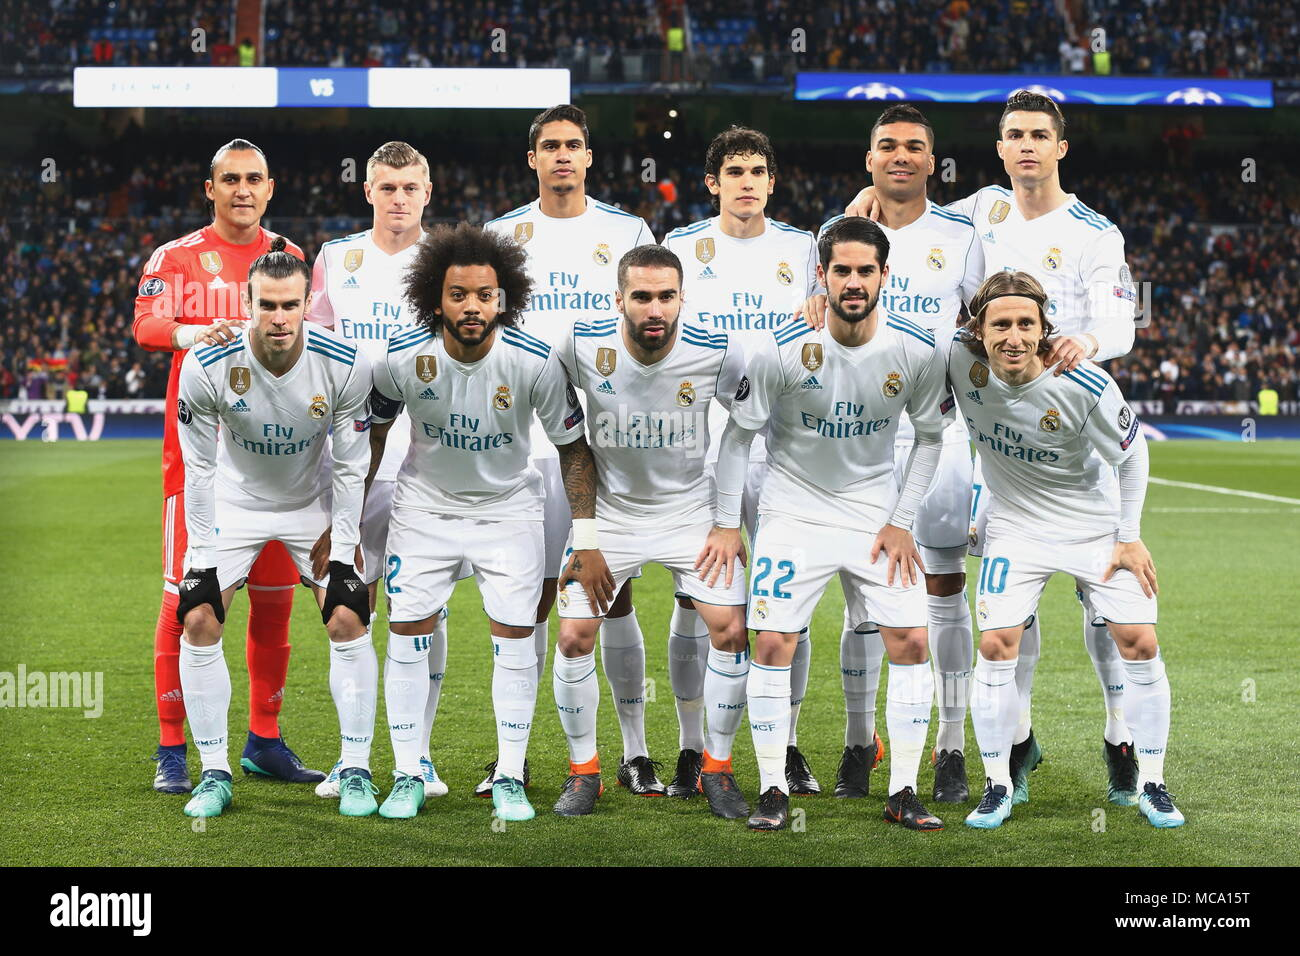 e532702d7 Real Madrid team group line-up (Real)